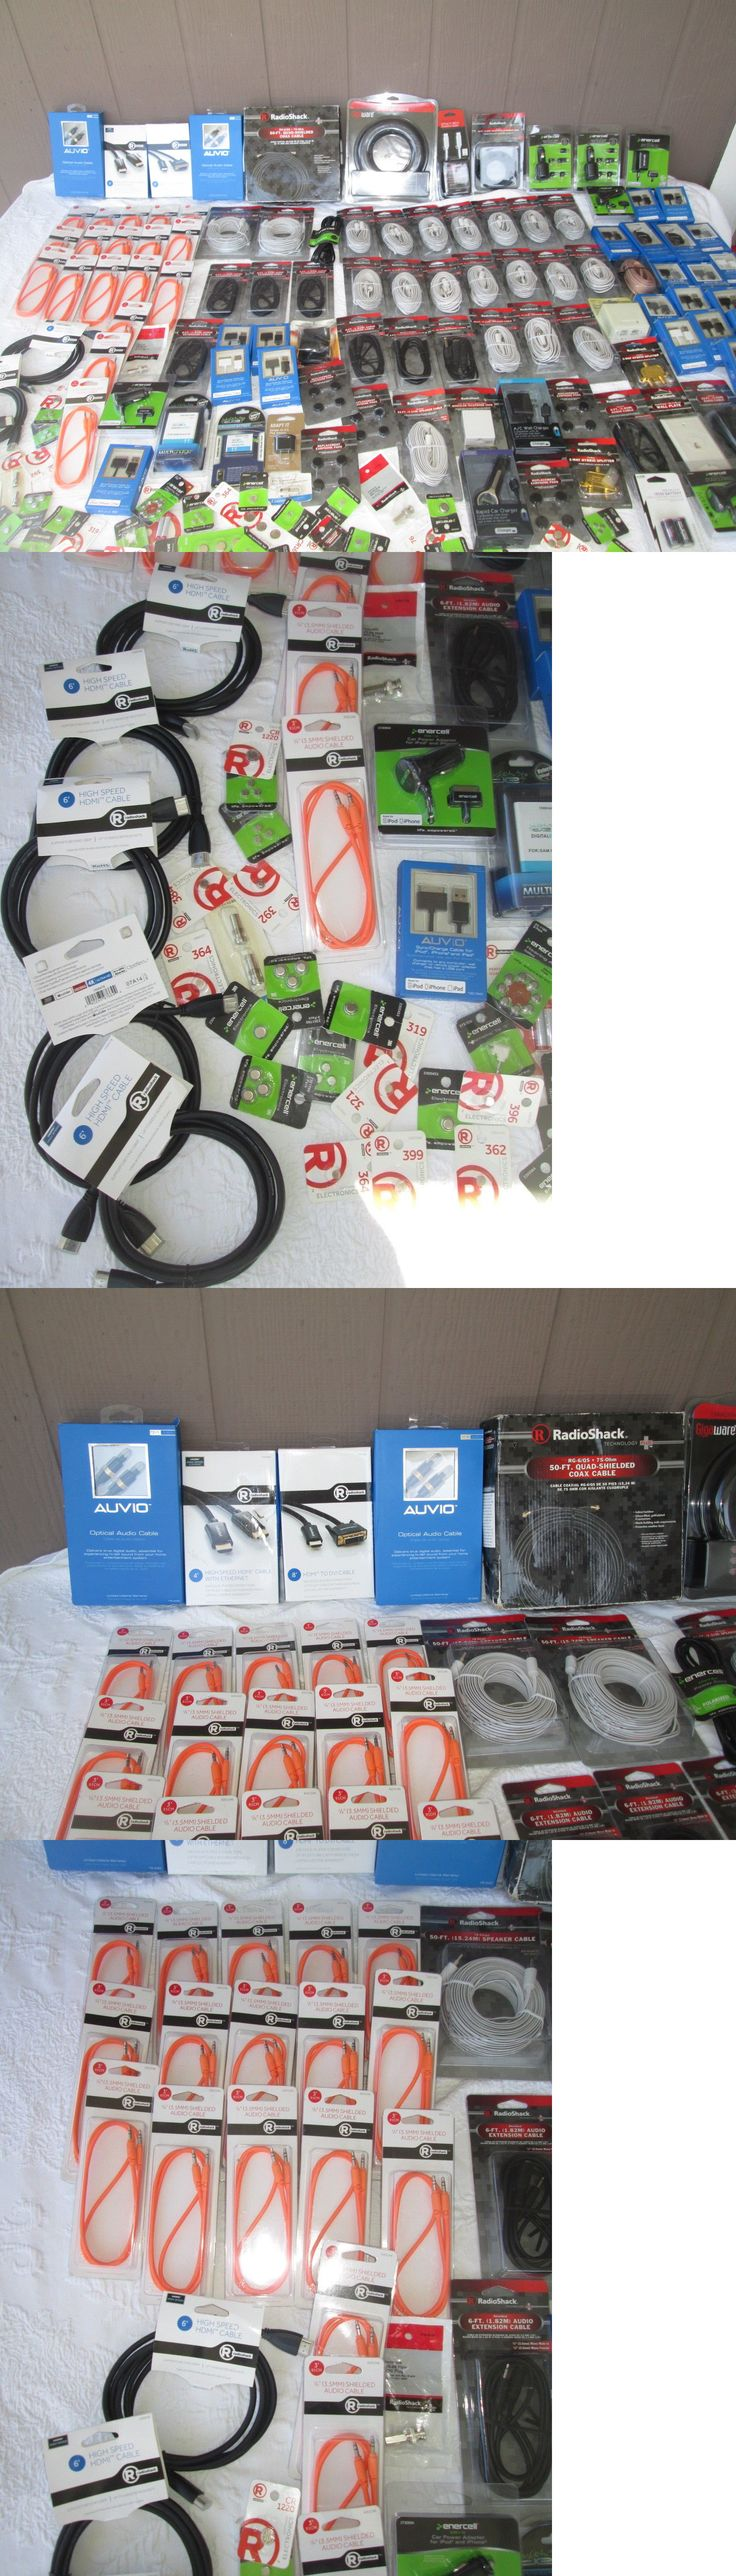 Other Consumer Electronic Lots: Wholesale Lot Of Radio Shack Merchandise 170 Pcs. For Retail New Jp 05 -> BUY IT NOW ONLY: $100.0 on eBay!